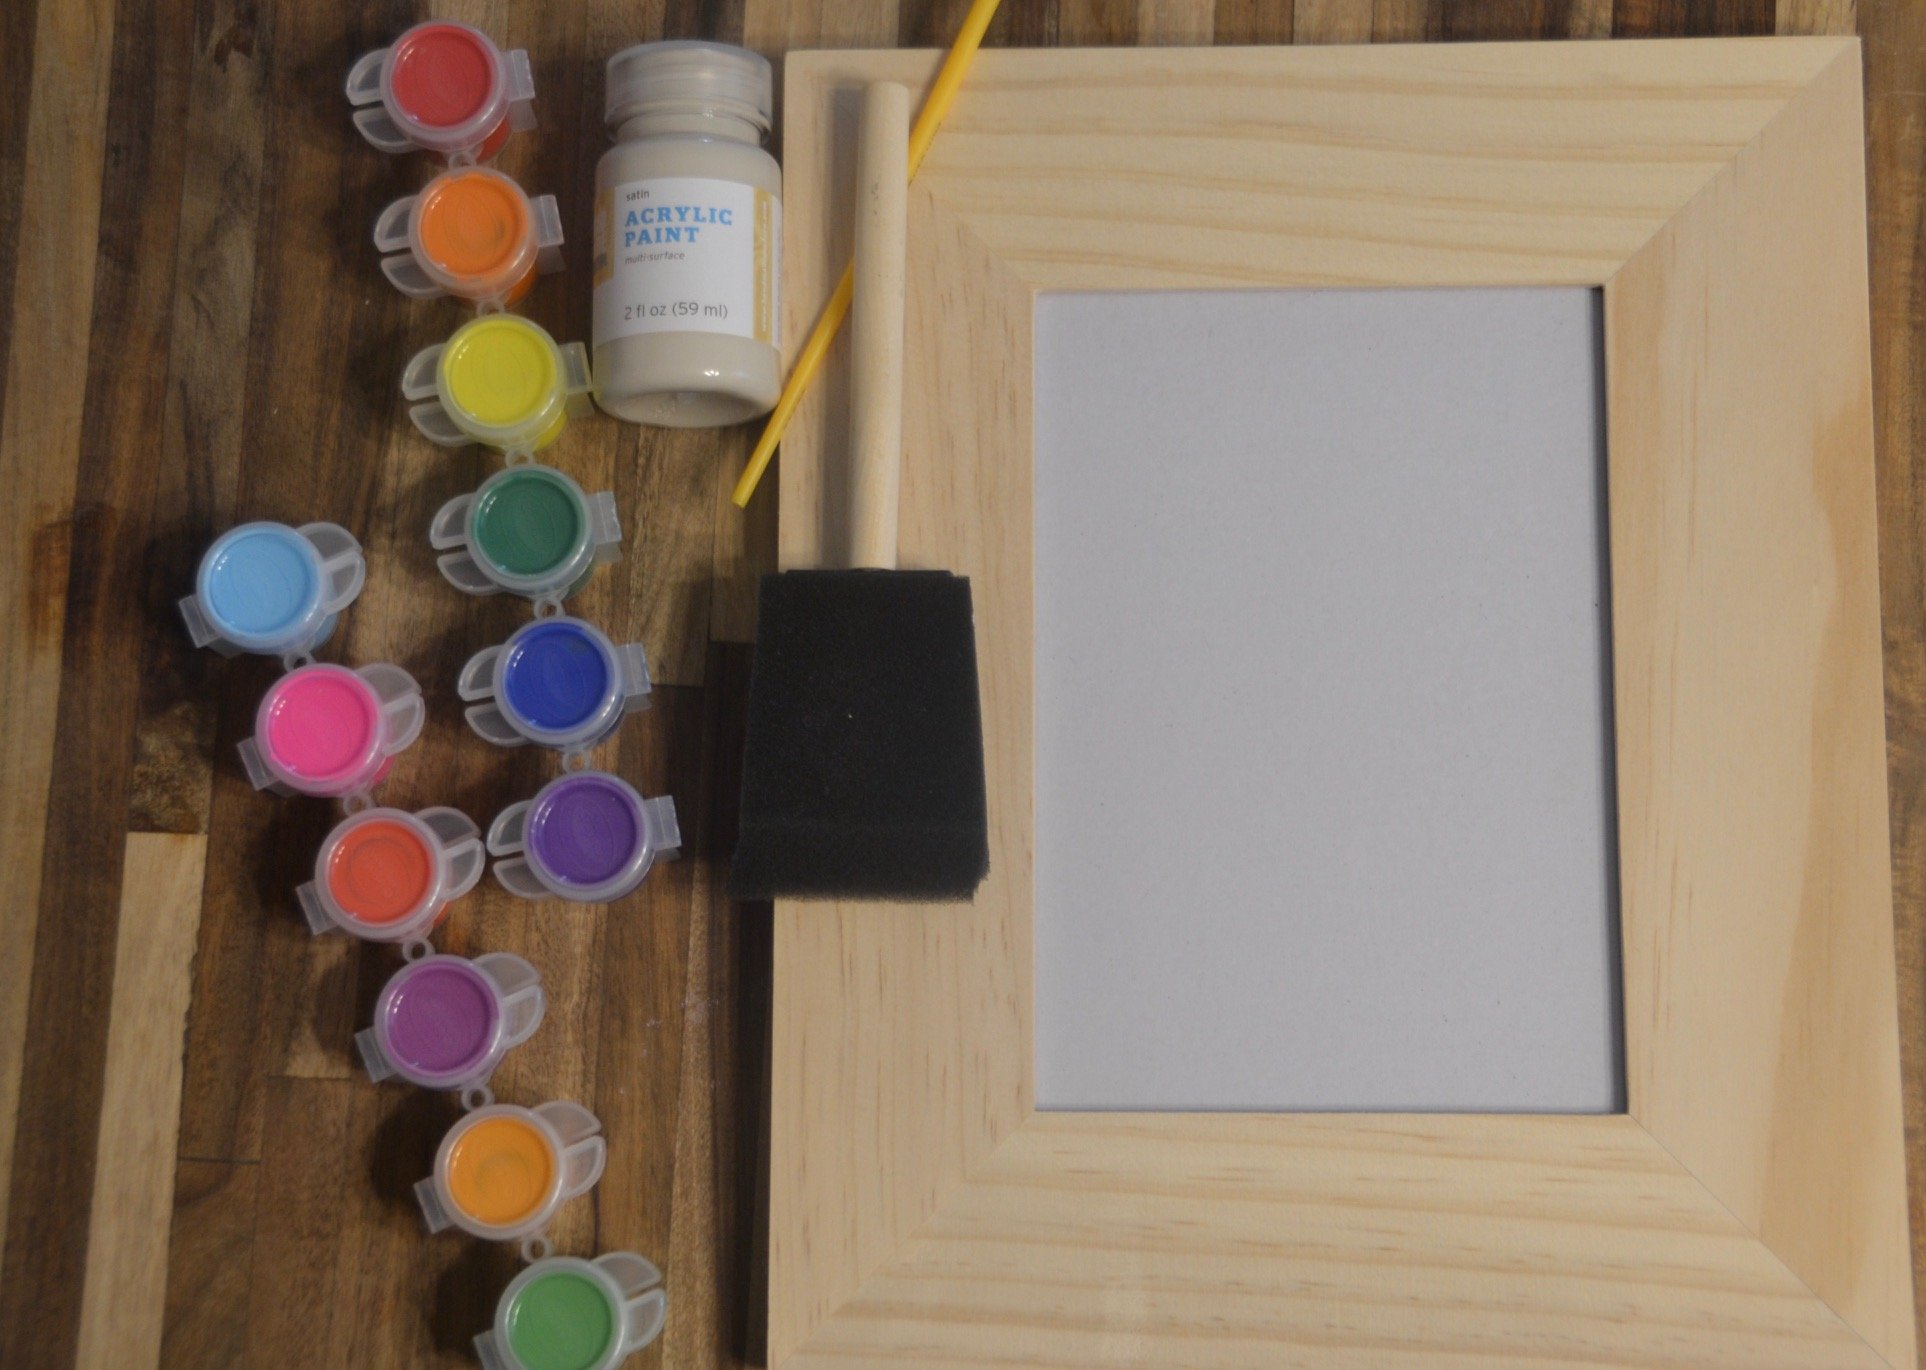 Is Acrylic Paint Safe For Handprints